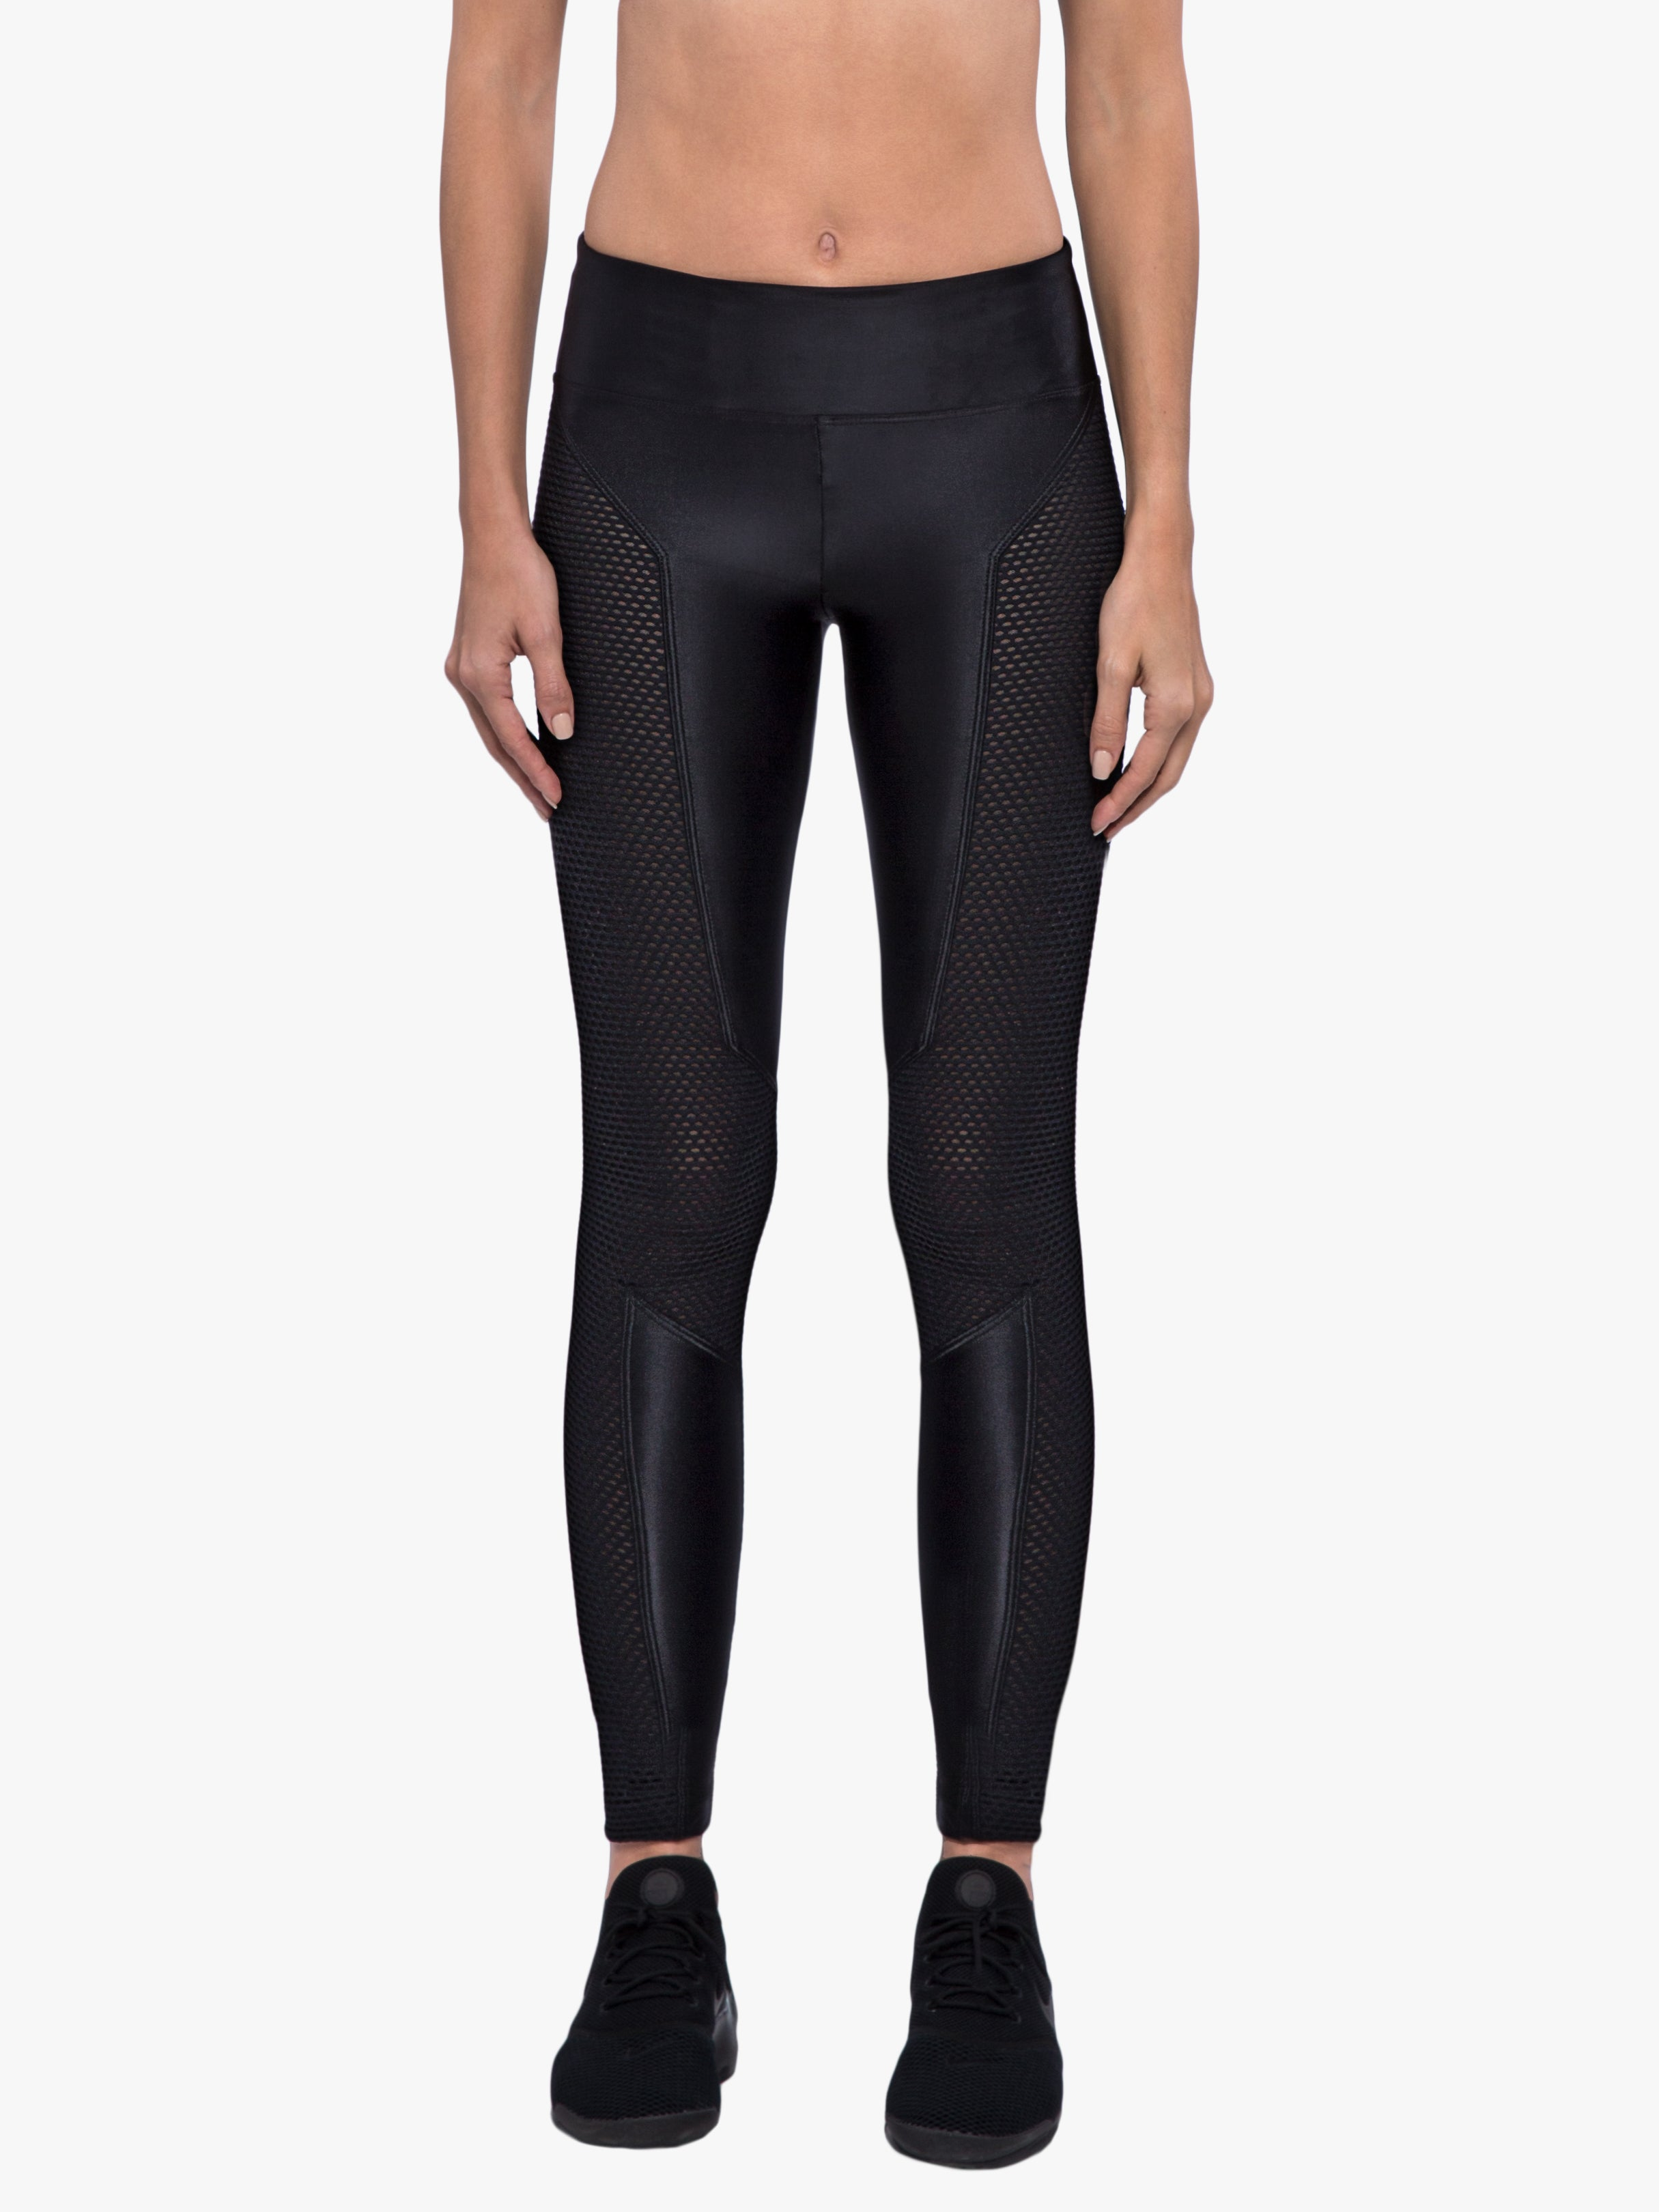 Harlow High Rise Energy Legging - Black